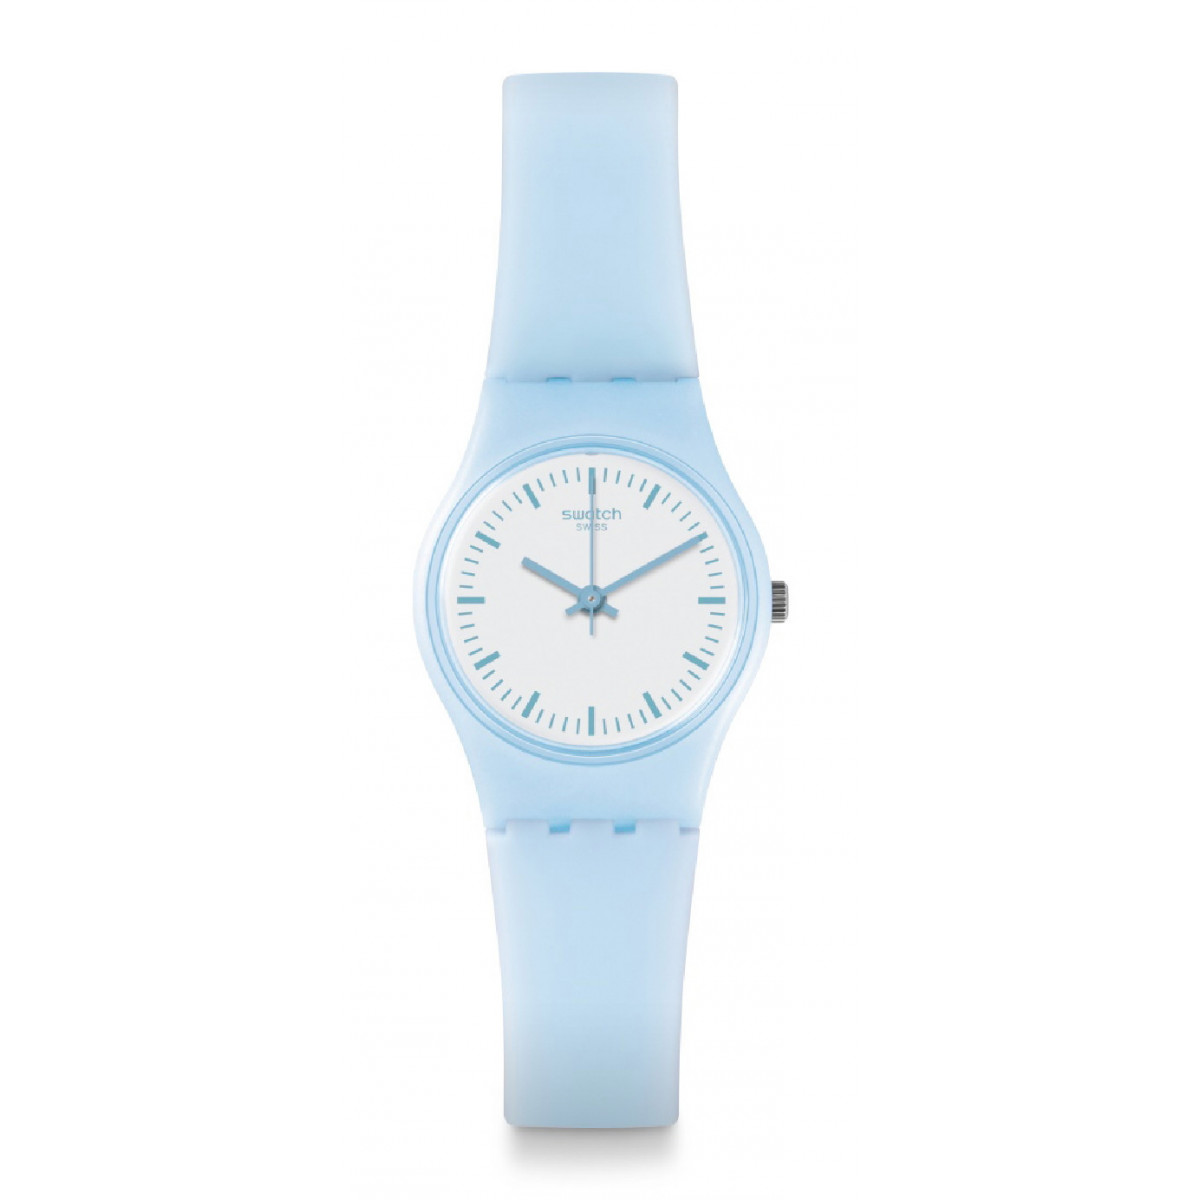 SwatchLL119_Clearsky_outlet_50%